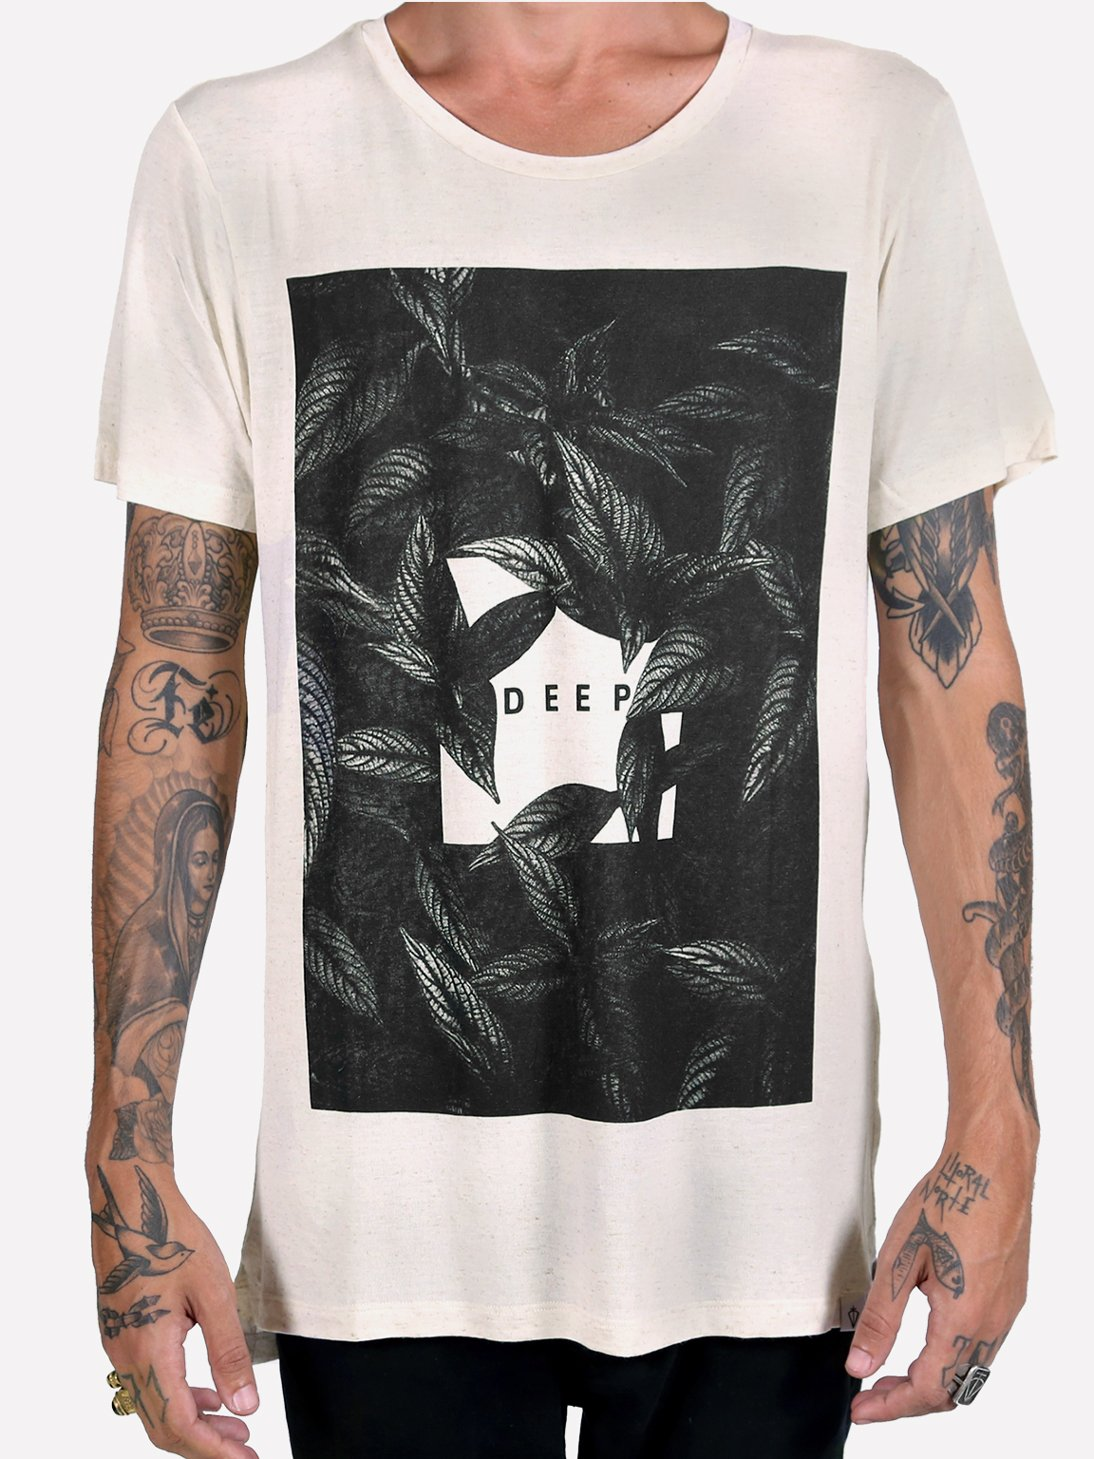 Foto do Camiseta Oliv Deep